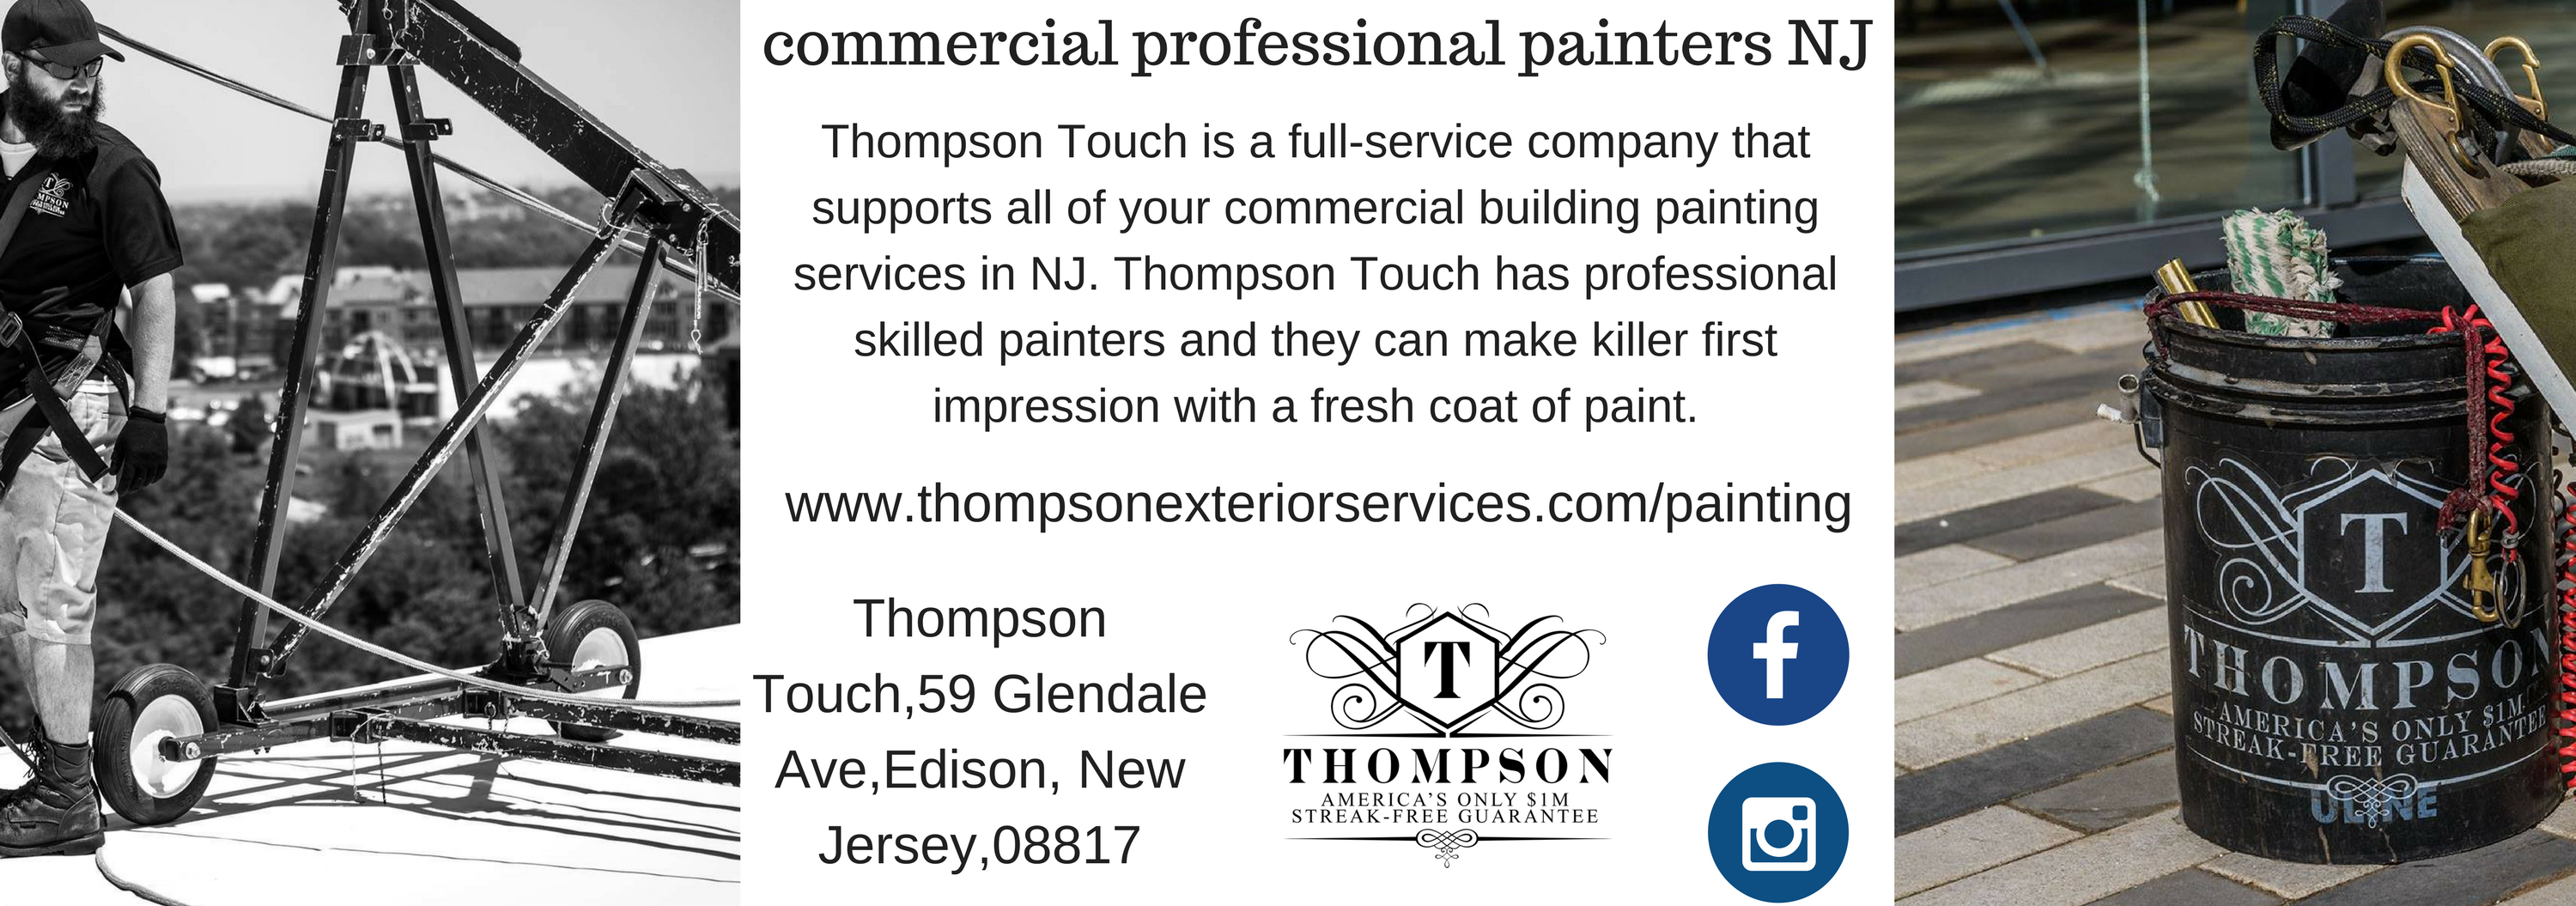 Thompson Touch is a fullservice company that supports all